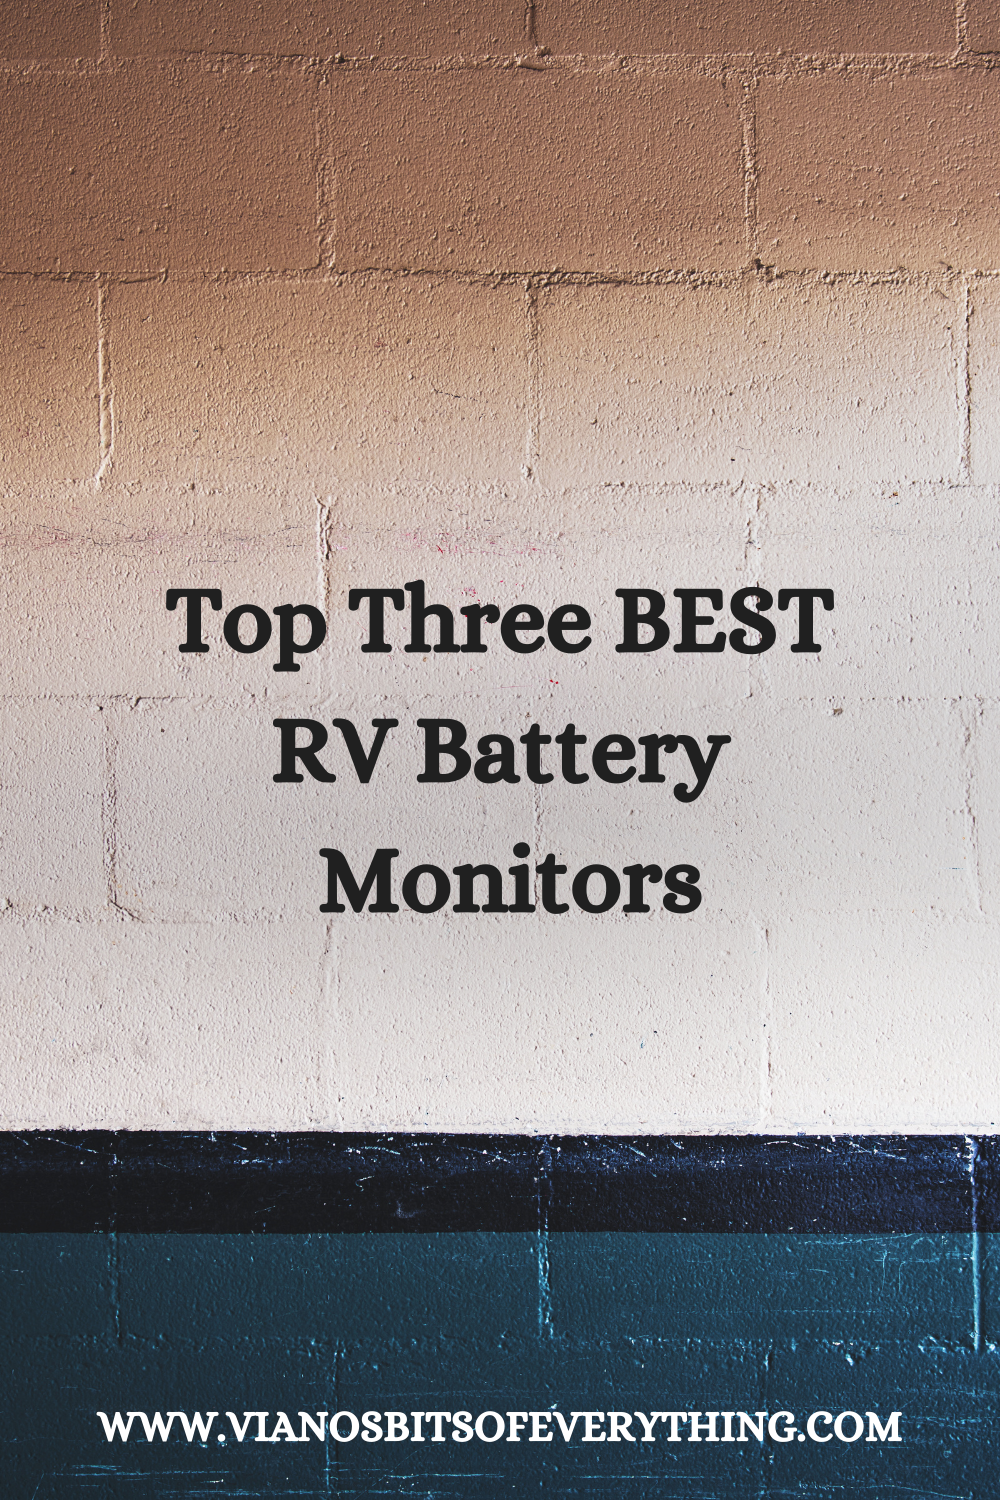 The Best RV Battery Monitors (Top 3)